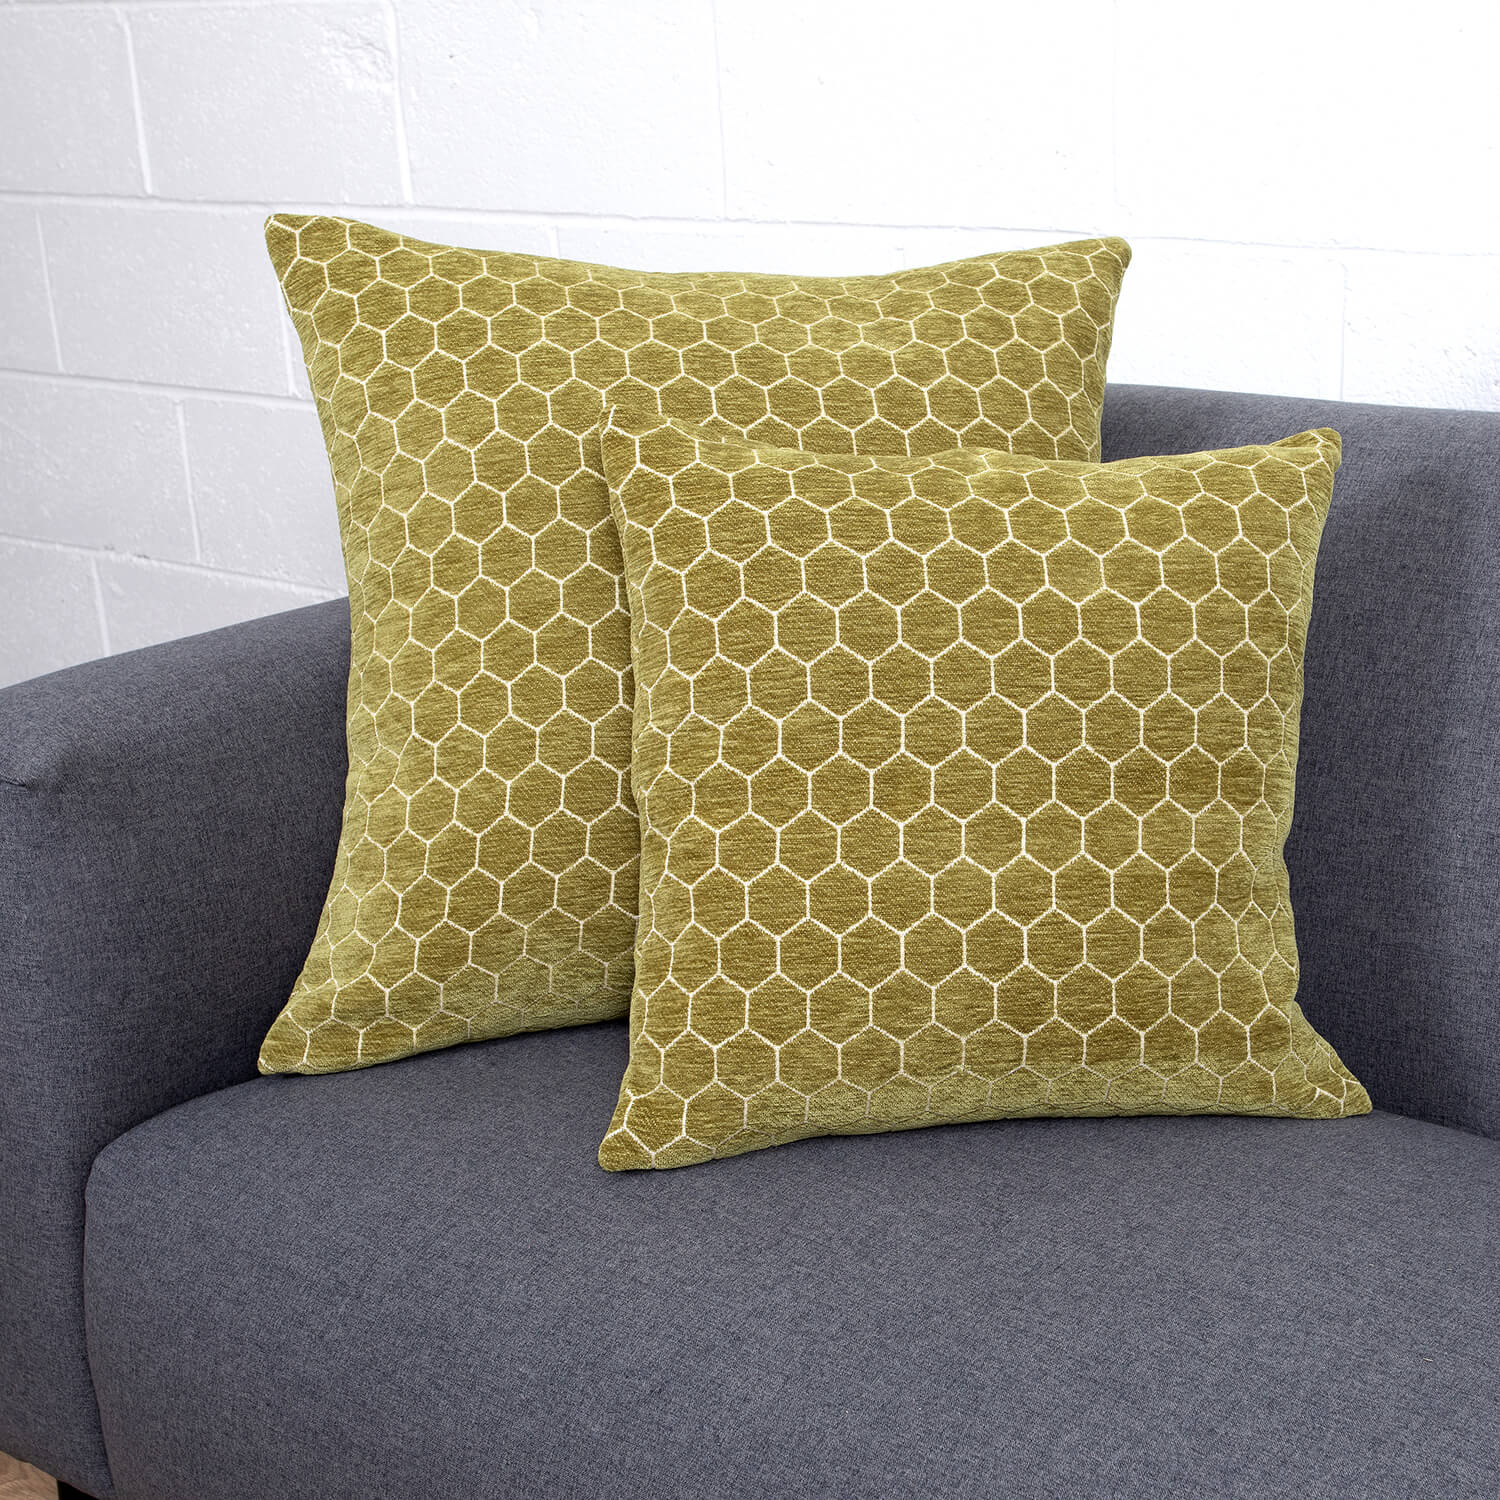 Honeycomb Cushion 58x58cm - Olive Green